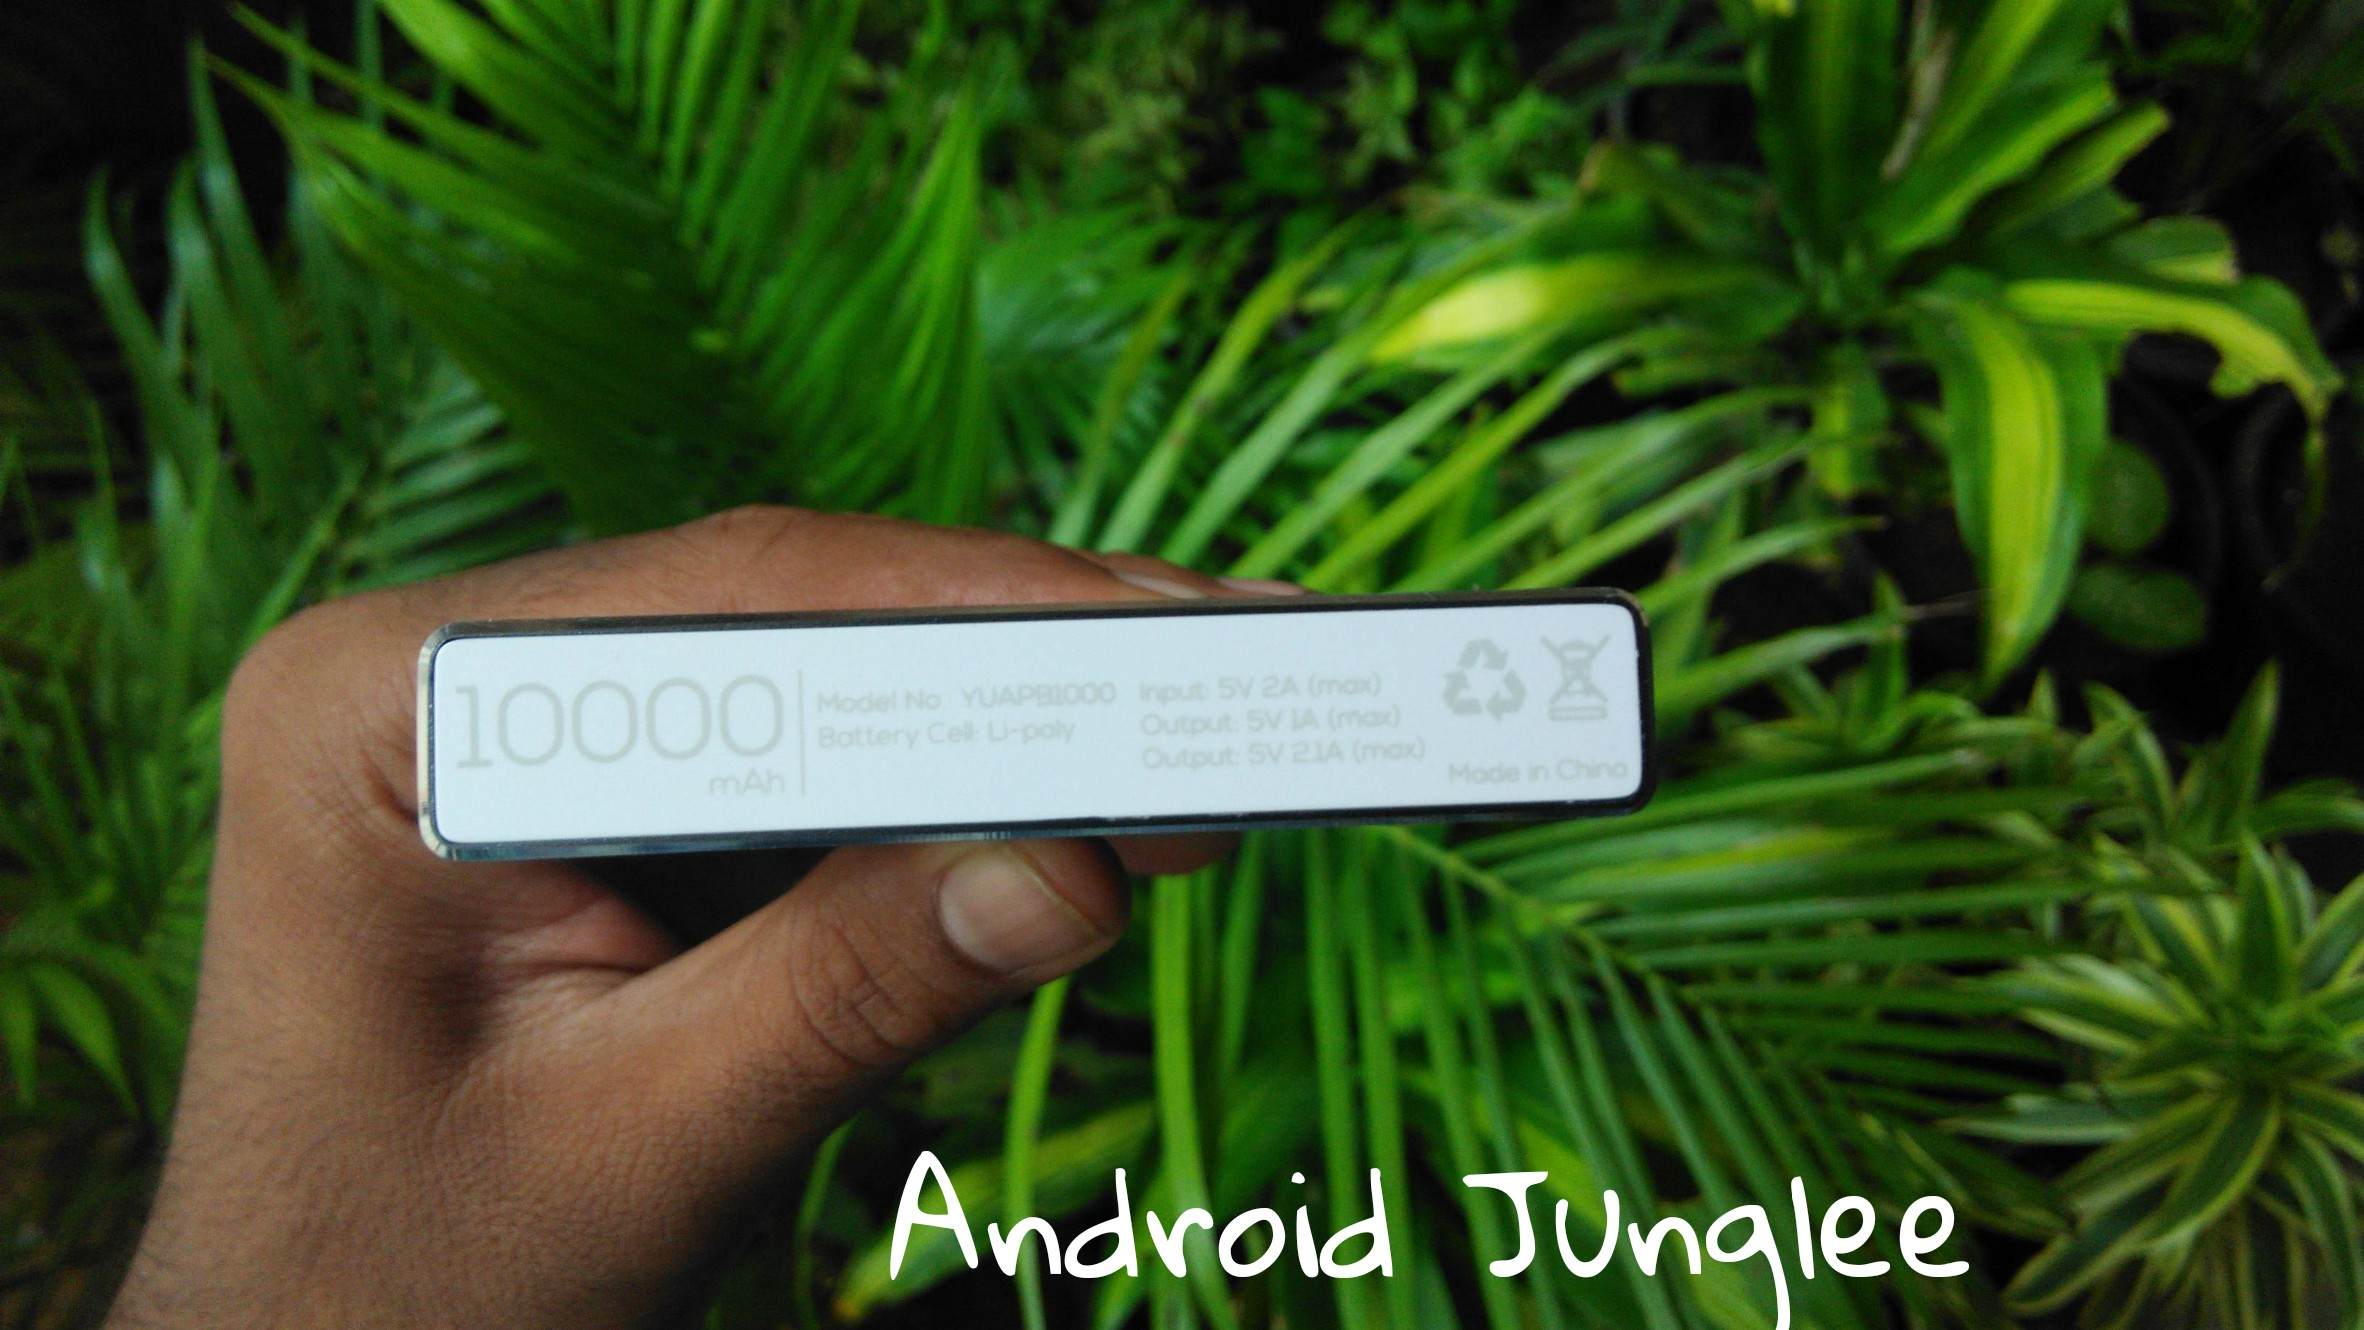 Yu jyuice 10000 mAh power bank